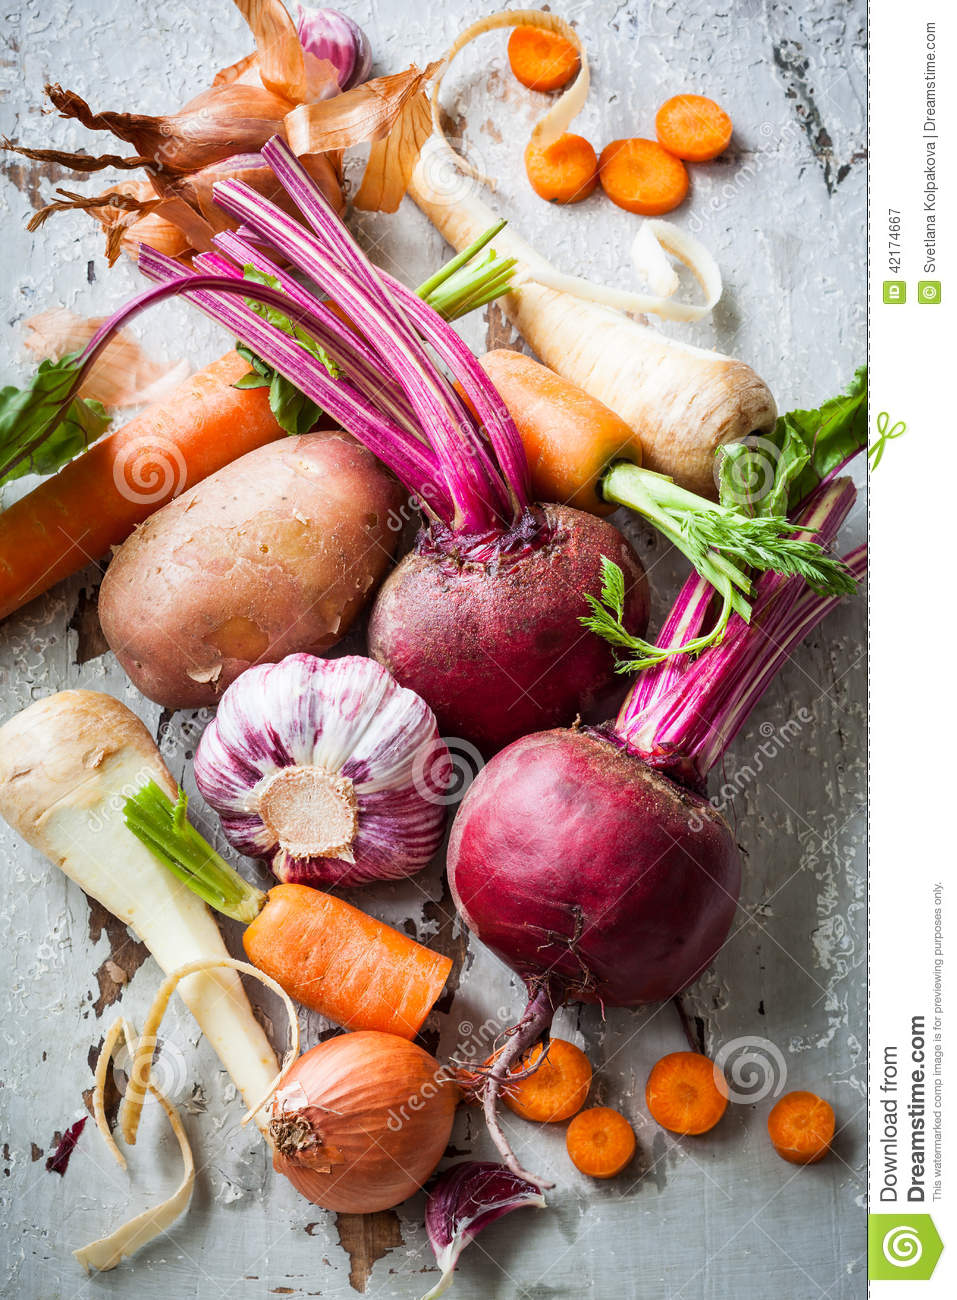 a carrot is an example of what kind of root